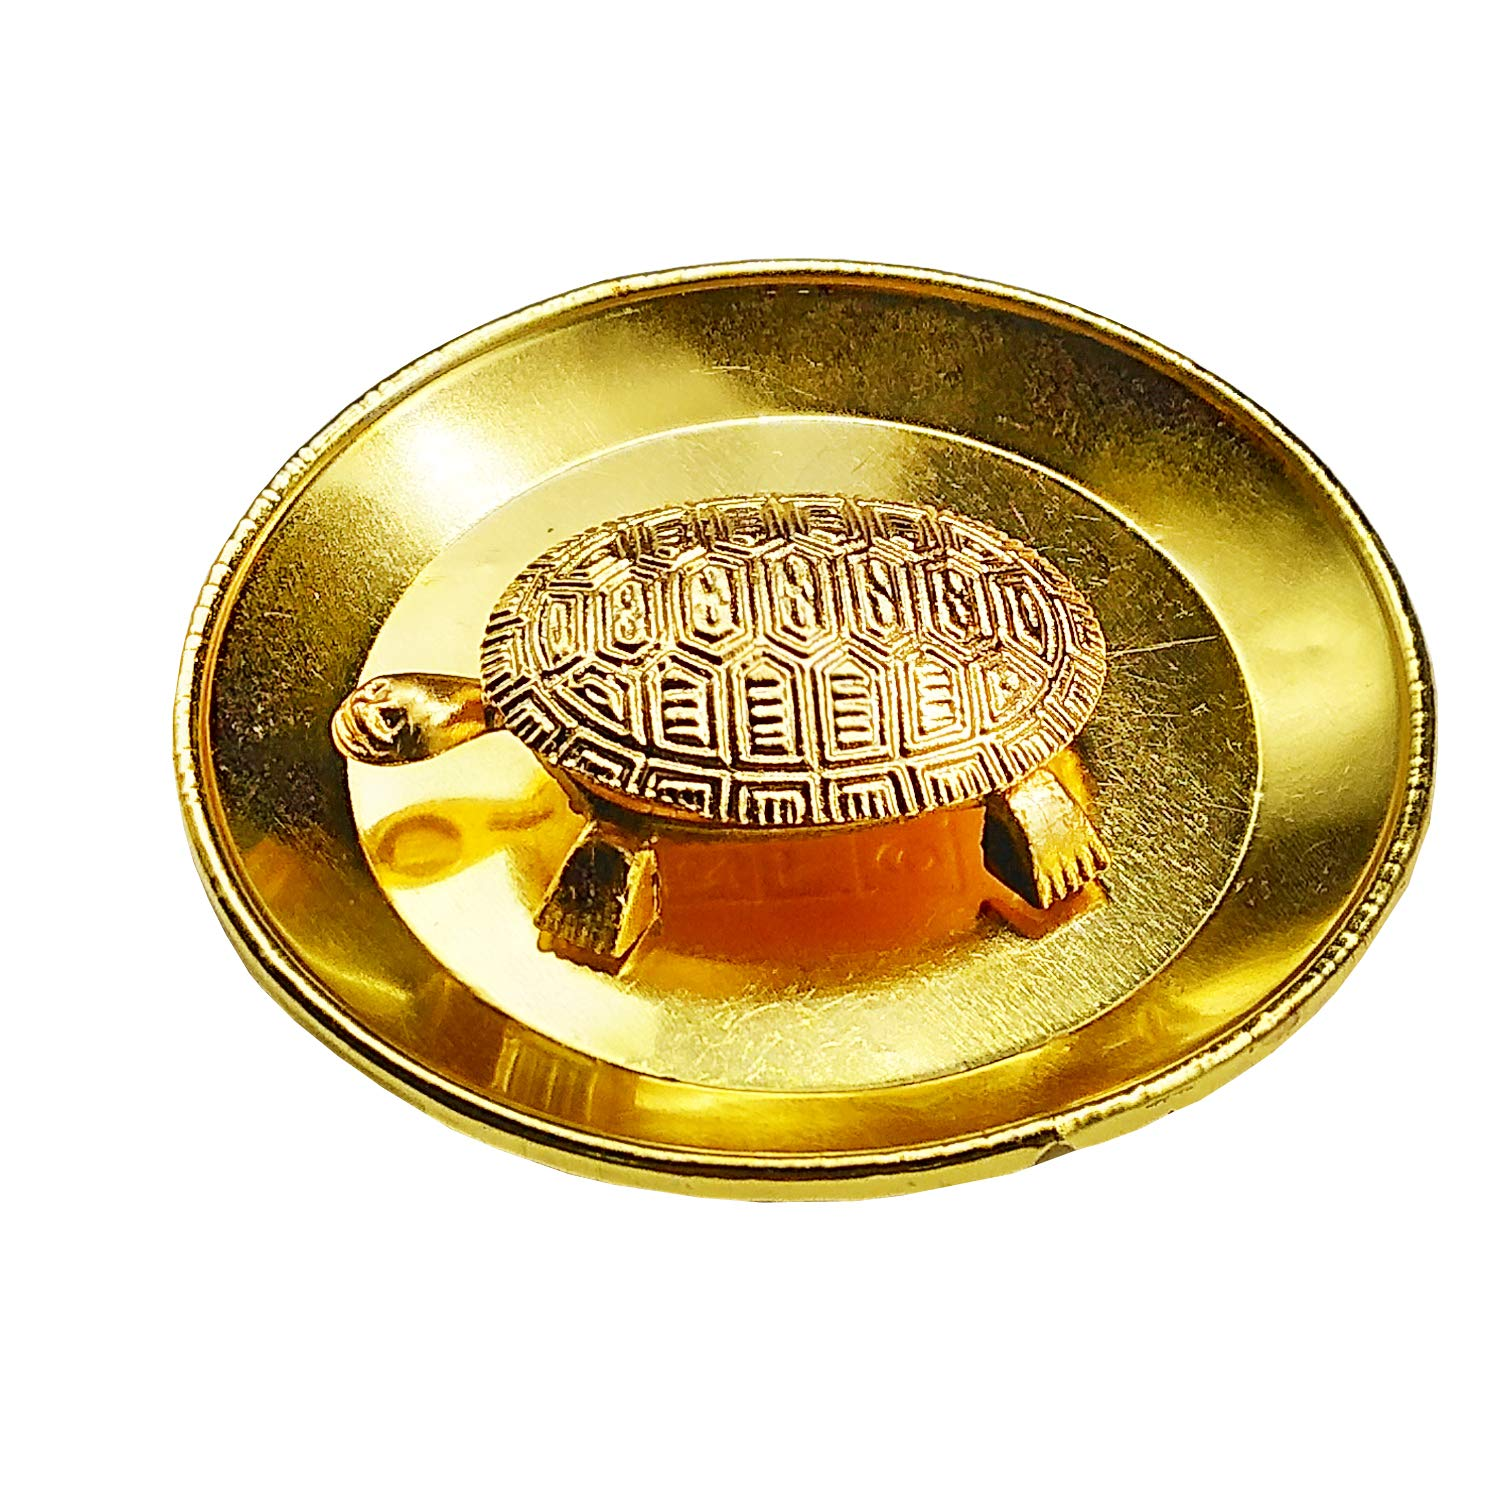 Golden Metal Plate Kachua Pooja Thali Yantra Fengshui Tortoise Turtle Plate Yantra - Bagaholics Gift